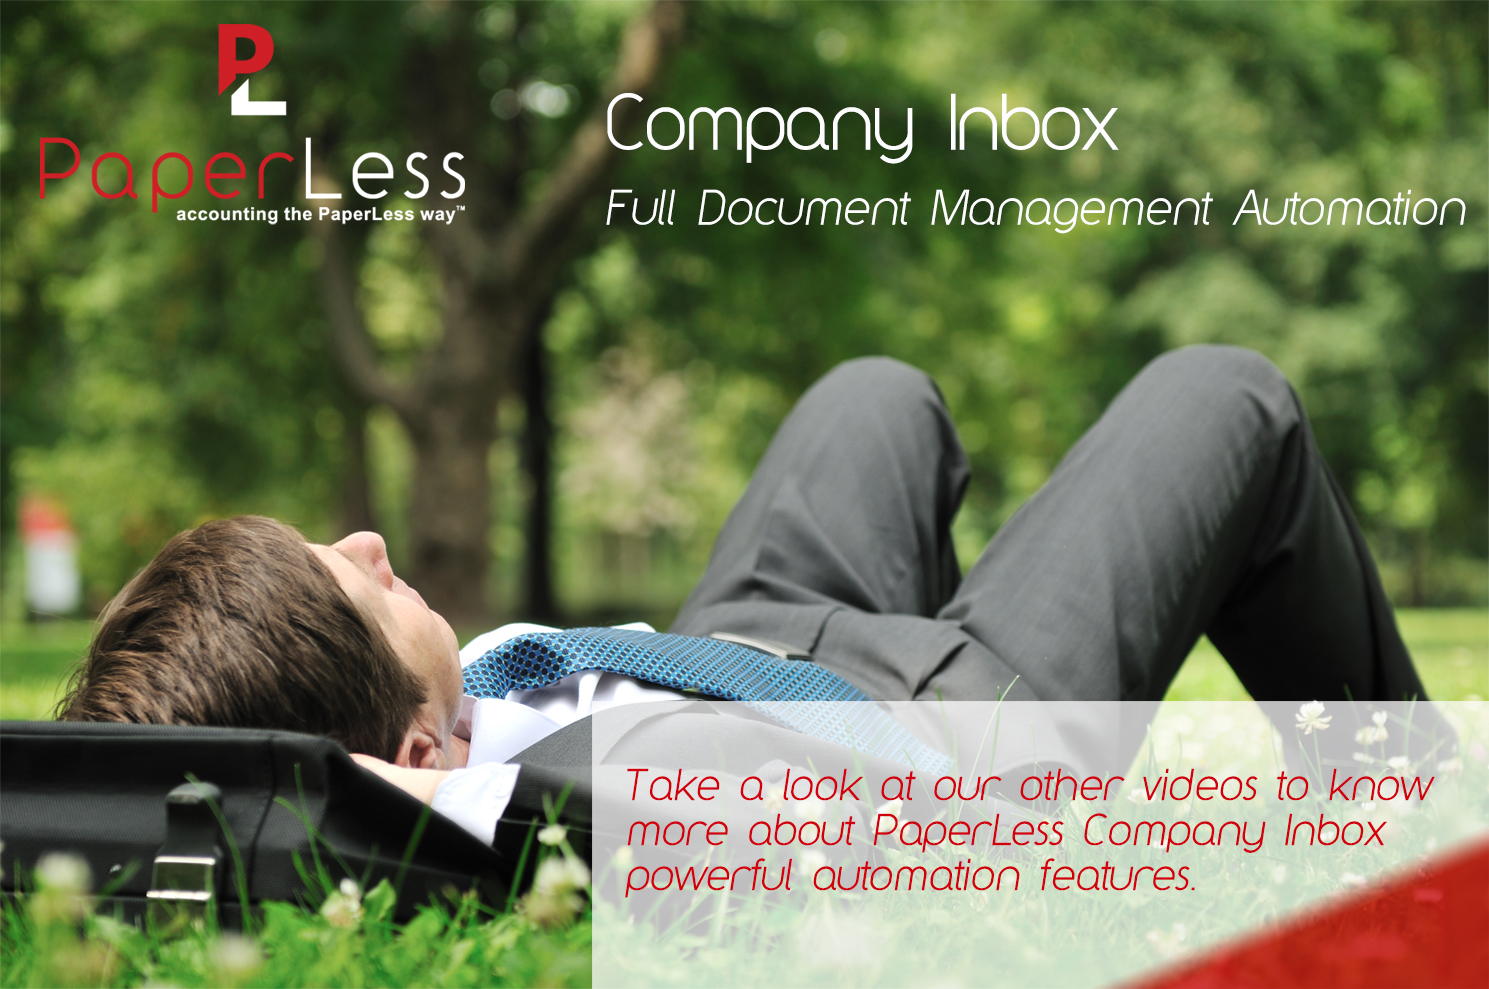 Click to Find Out More About PaperLess Company Inbox